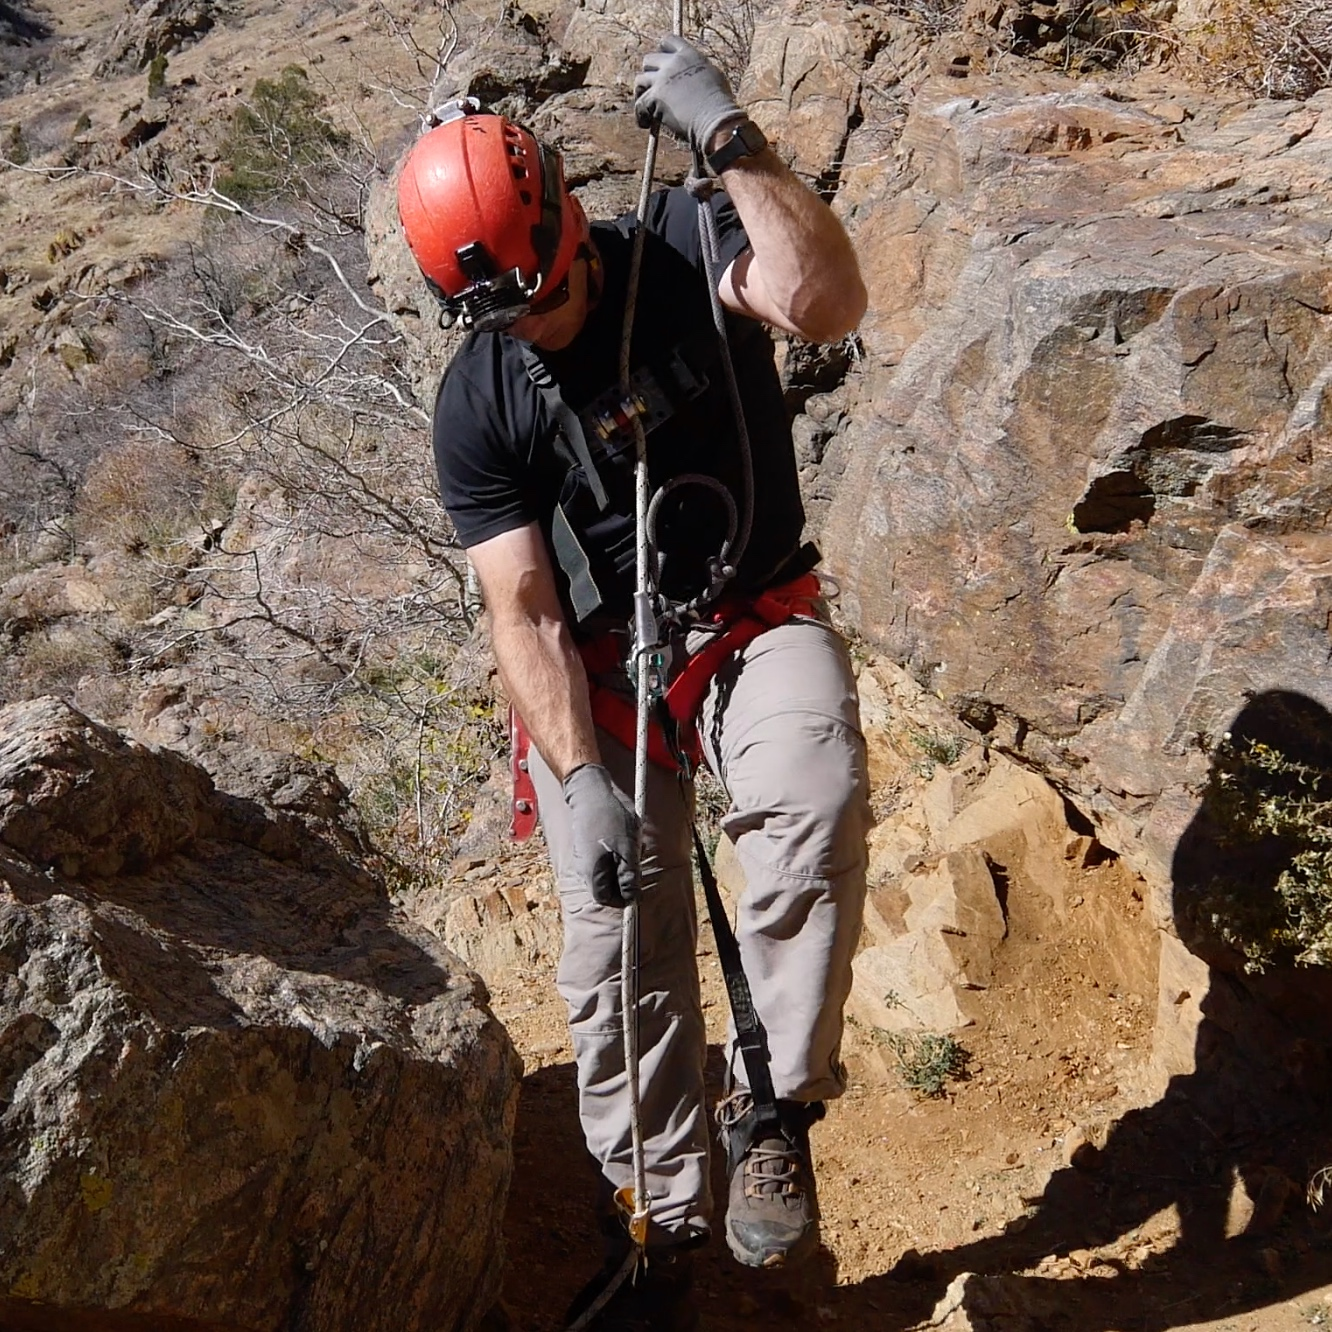 Ropewalker - The double-bungee ropewalker ascending system is complicated and heavy, but is the most efficient and fastest way to climb a free-hanging single rope.